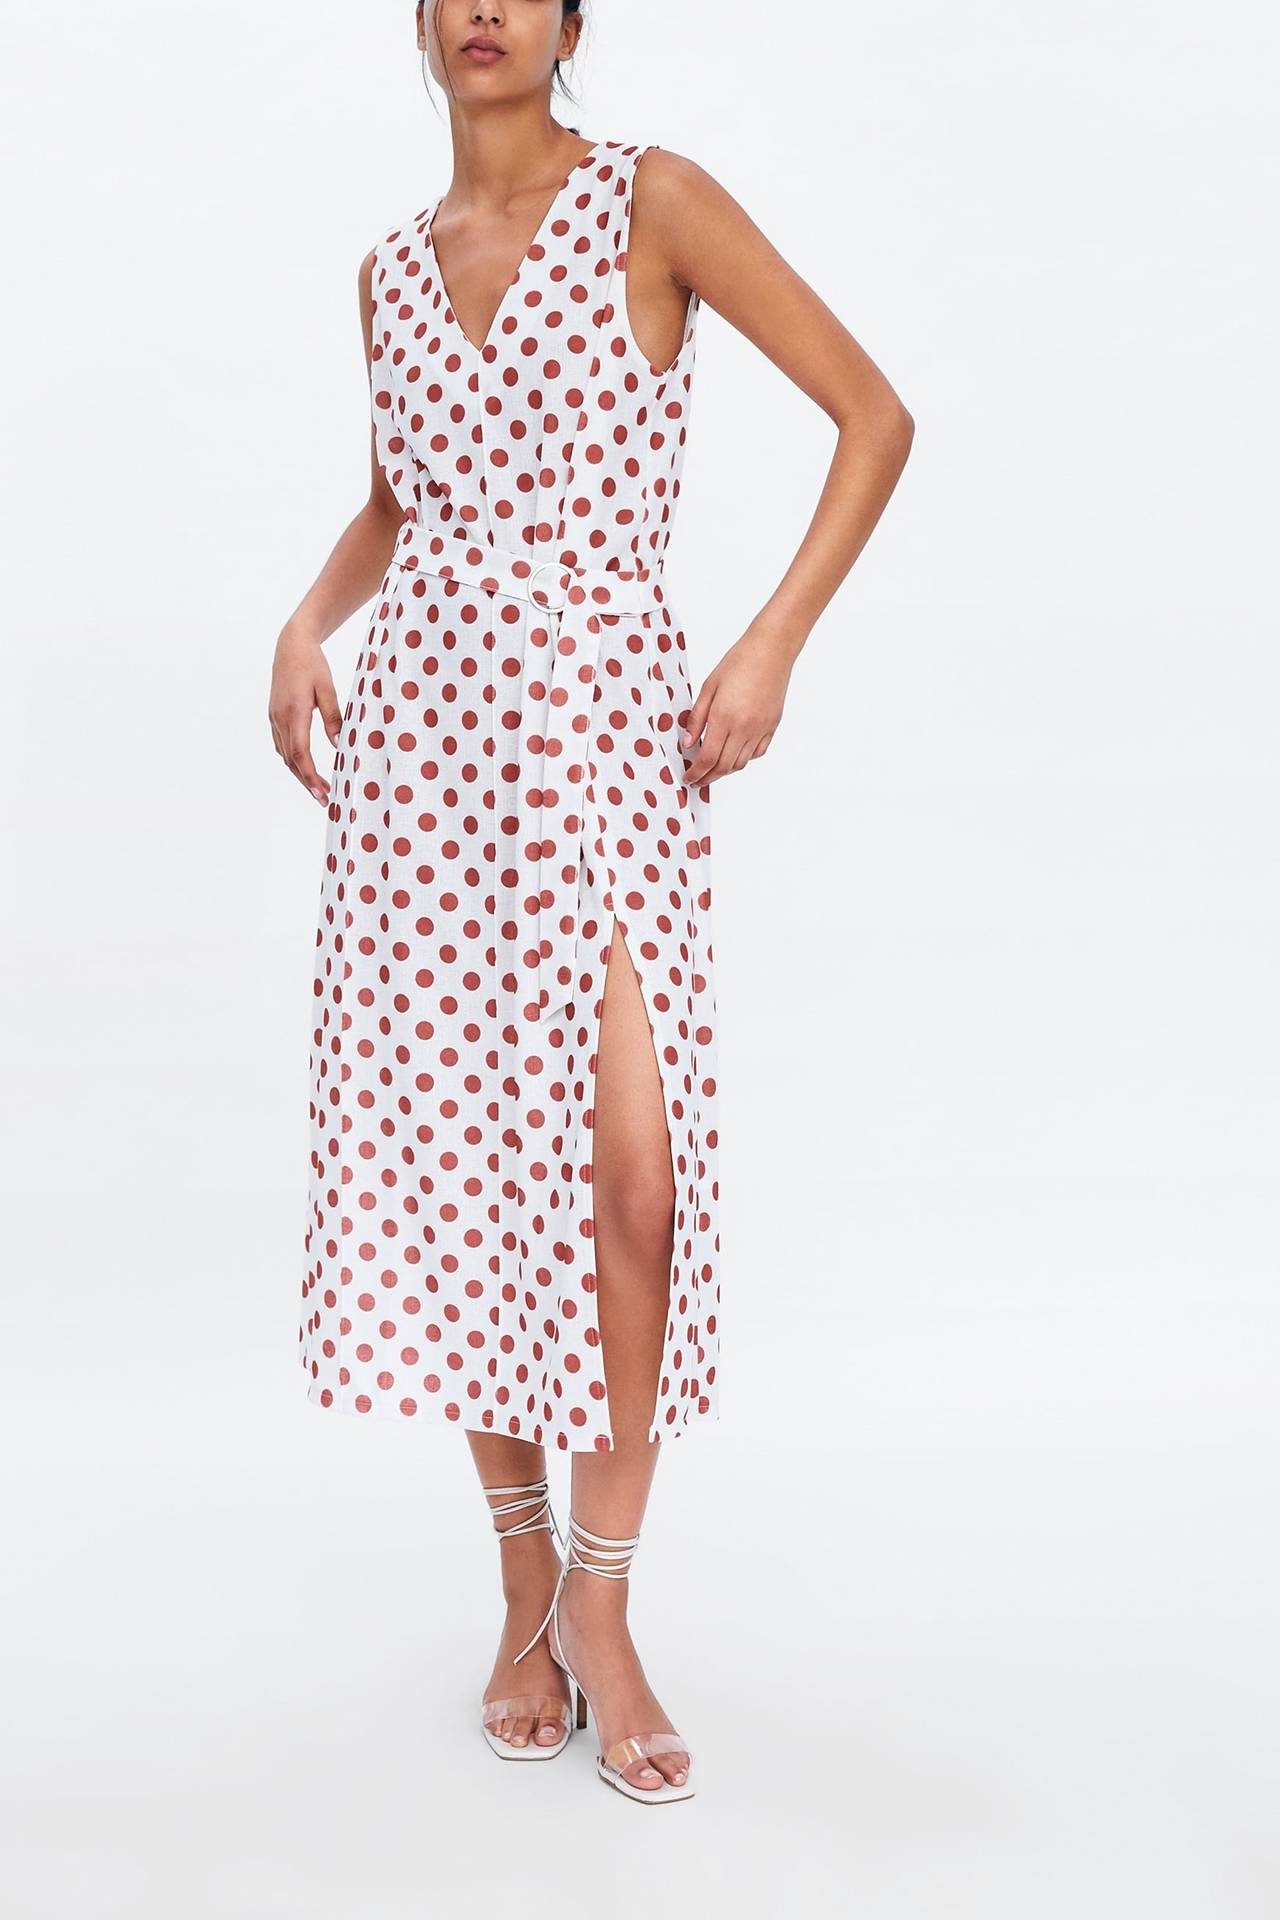 809b6aee99 Summer dresses 2019 UK - Midi